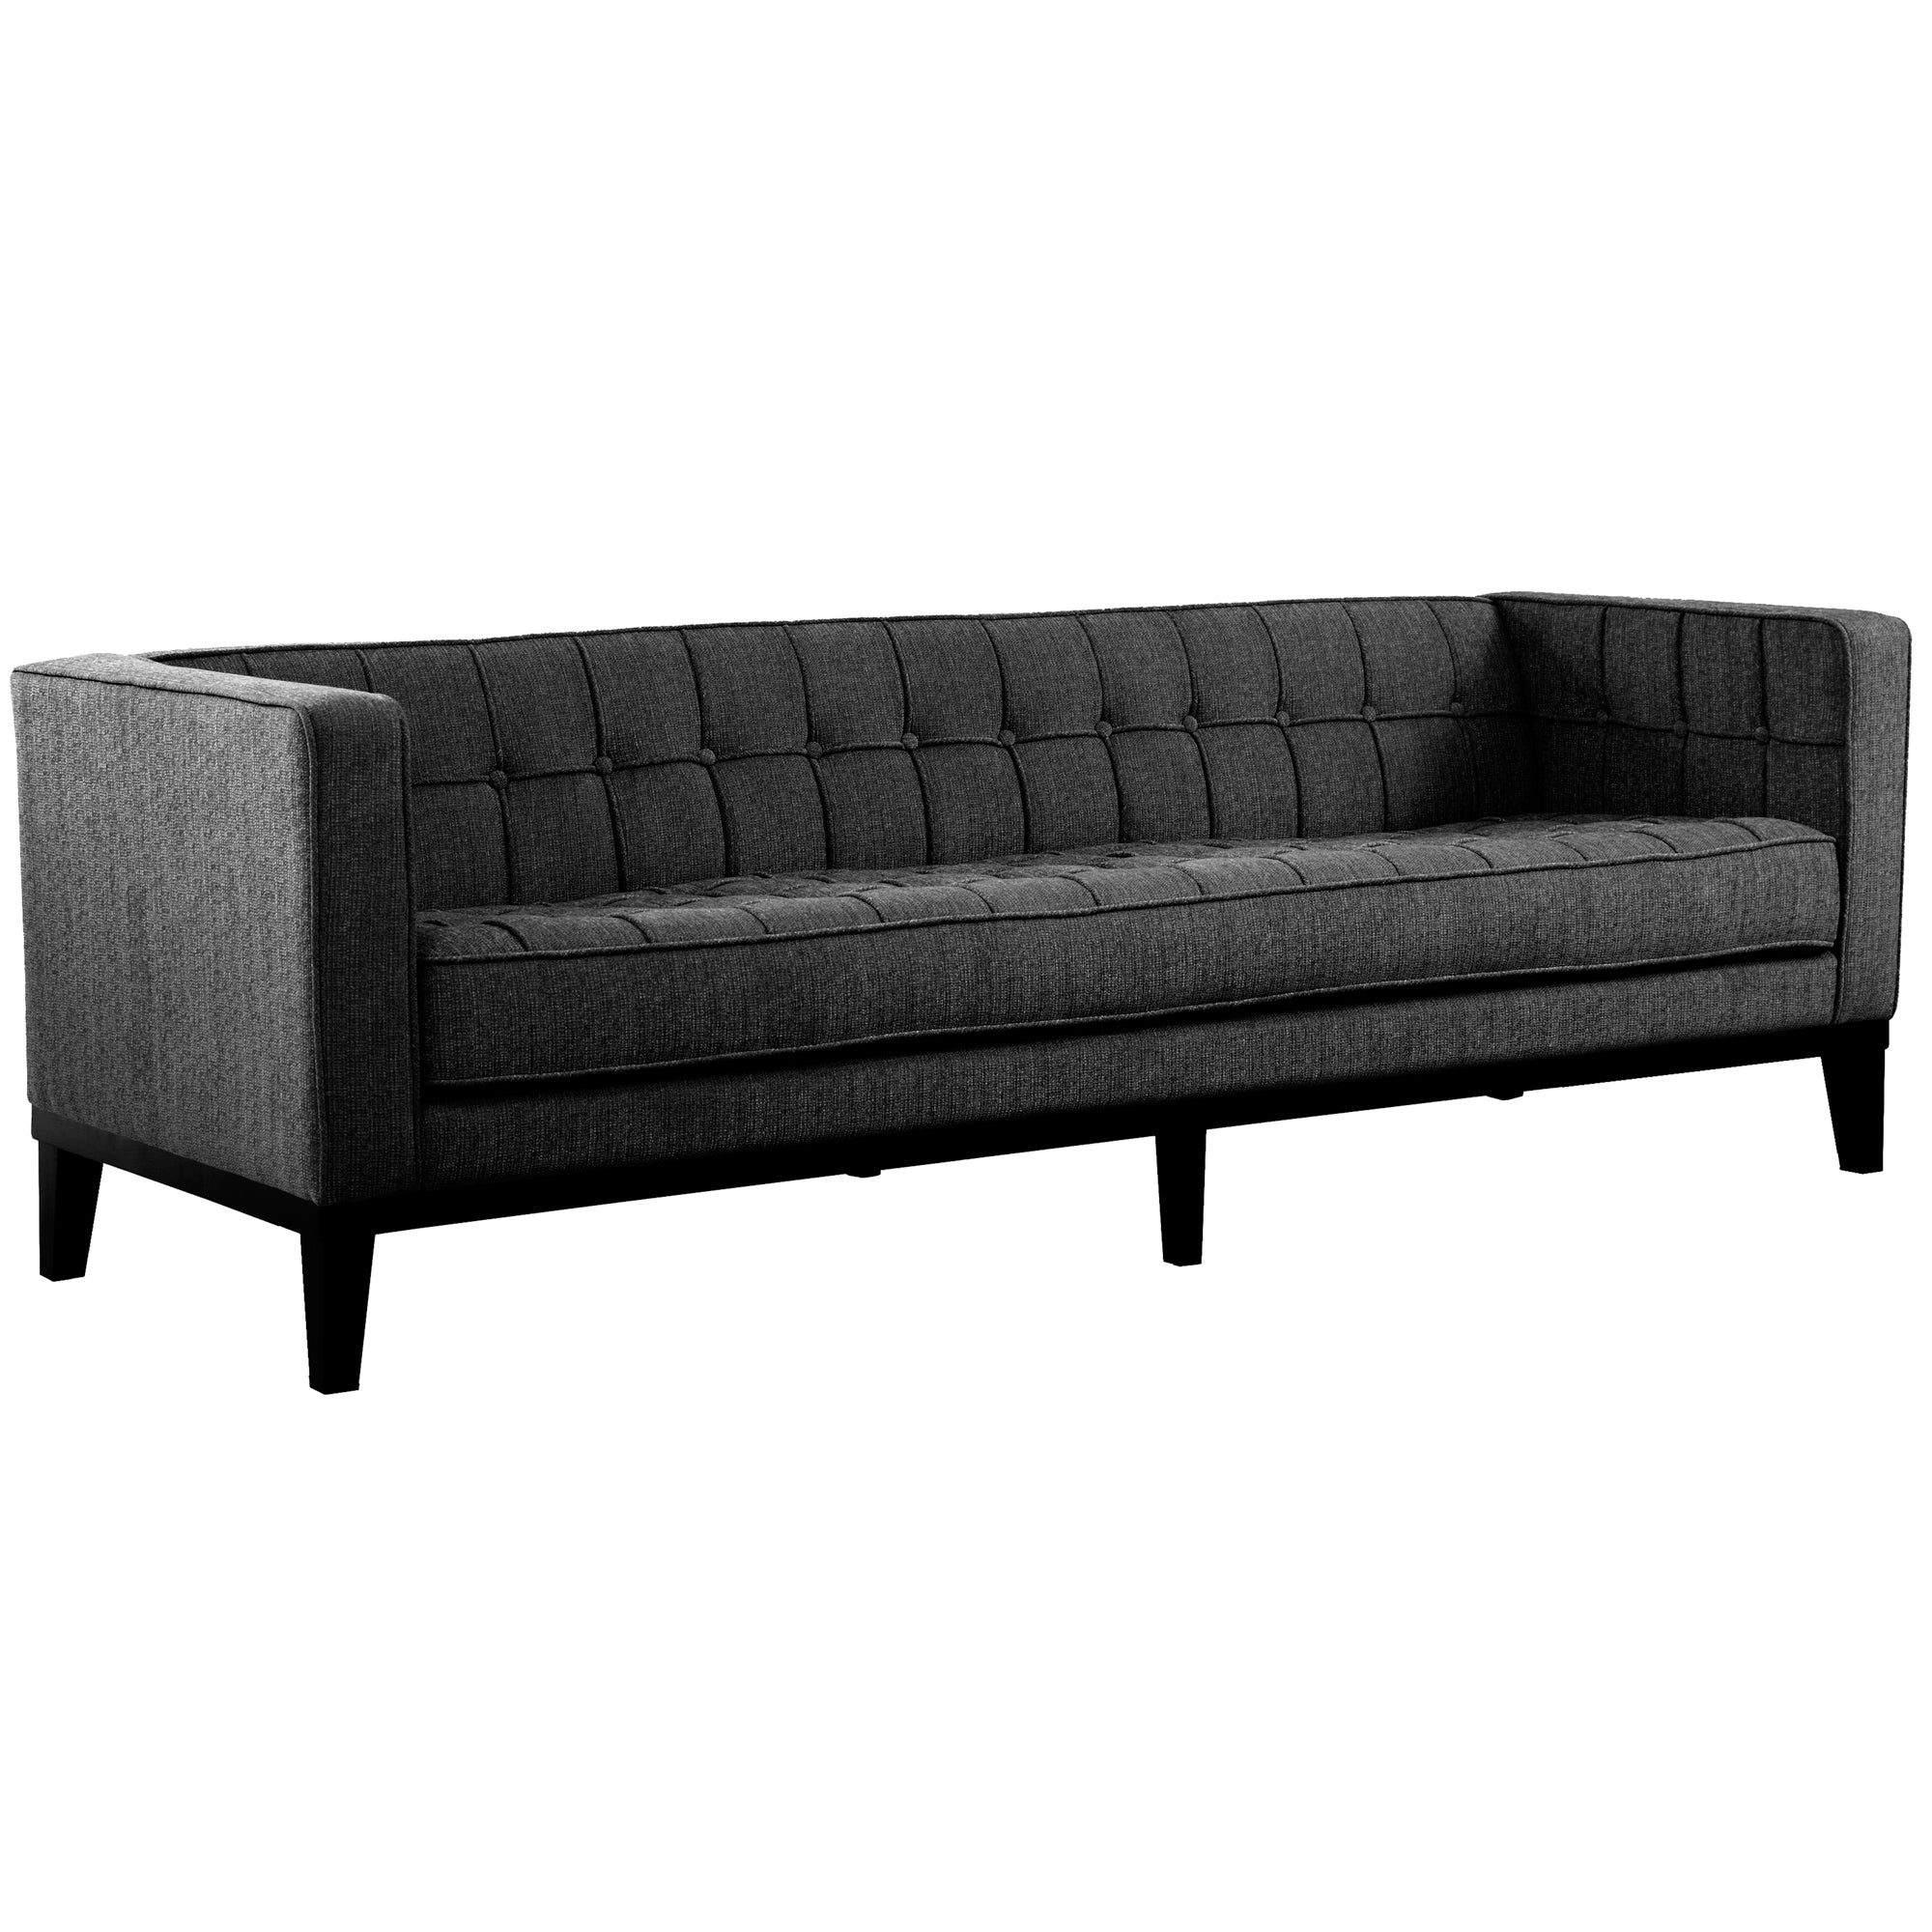 Furniture Sofa Charcoal Fabric Roxbury Photo